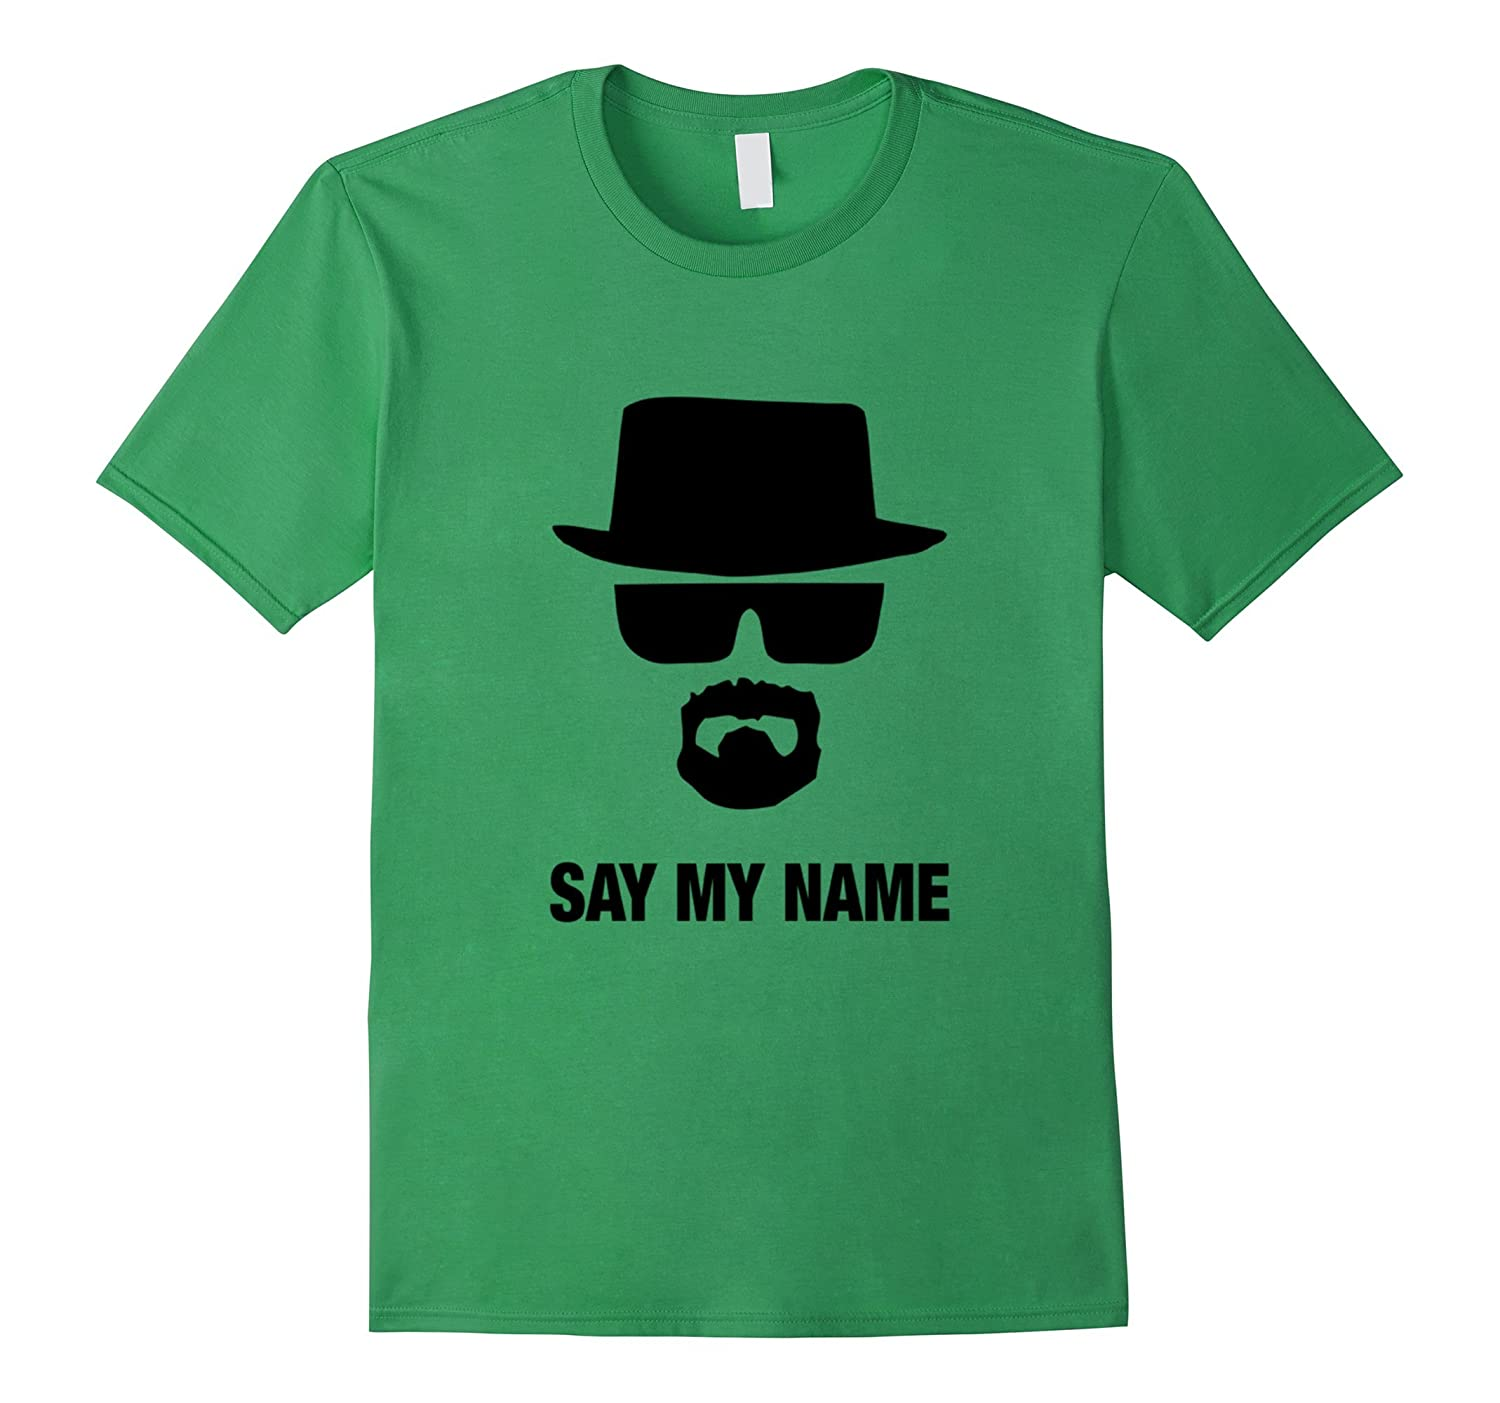 say my name t shirt art artvinatee. Black Bedroom Furniture Sets. Home Design Ideas